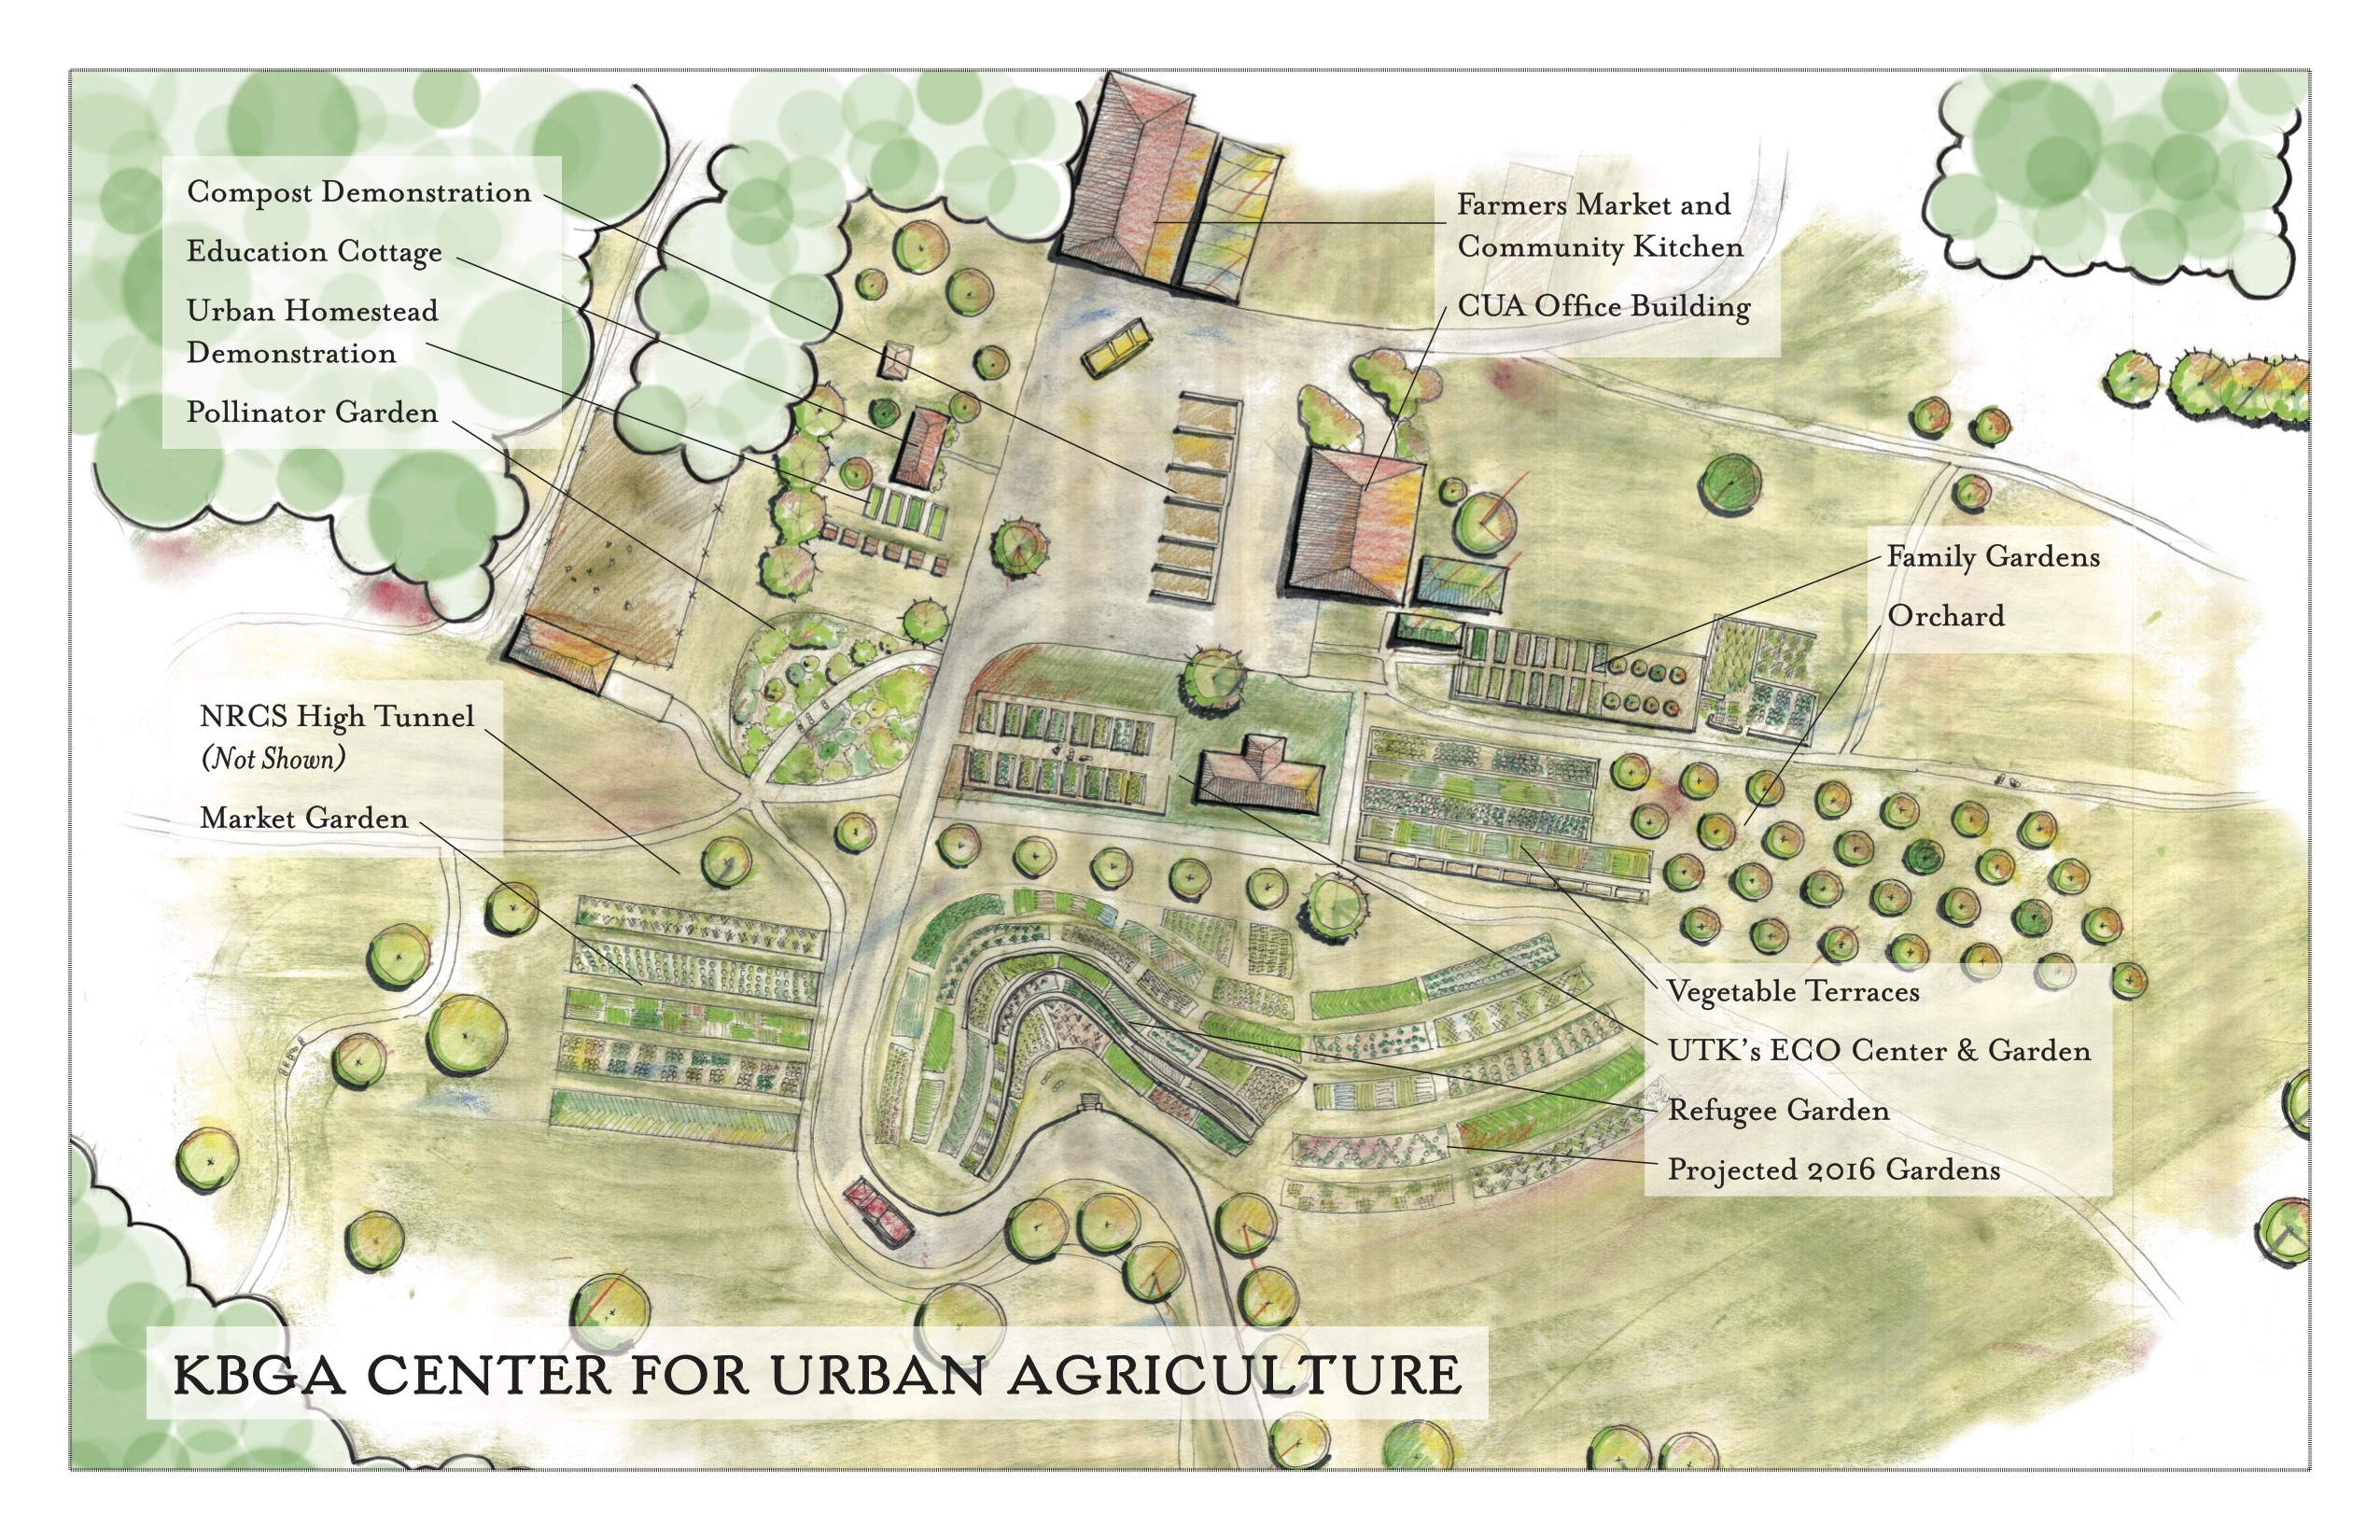 KBGA's Center for Urban Agriculture